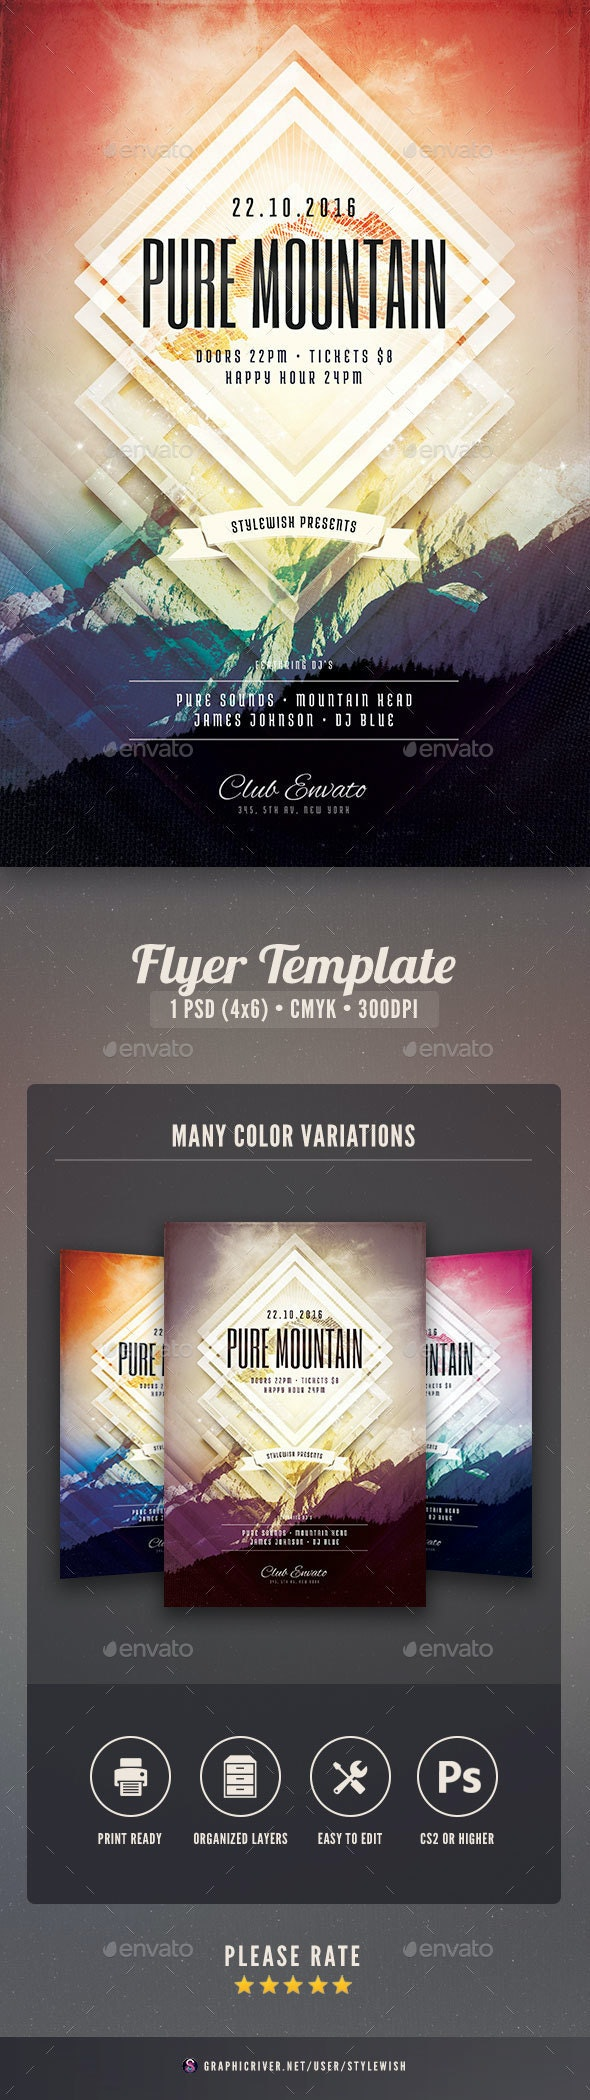 Pure Mountain Flyer - Concerts Events